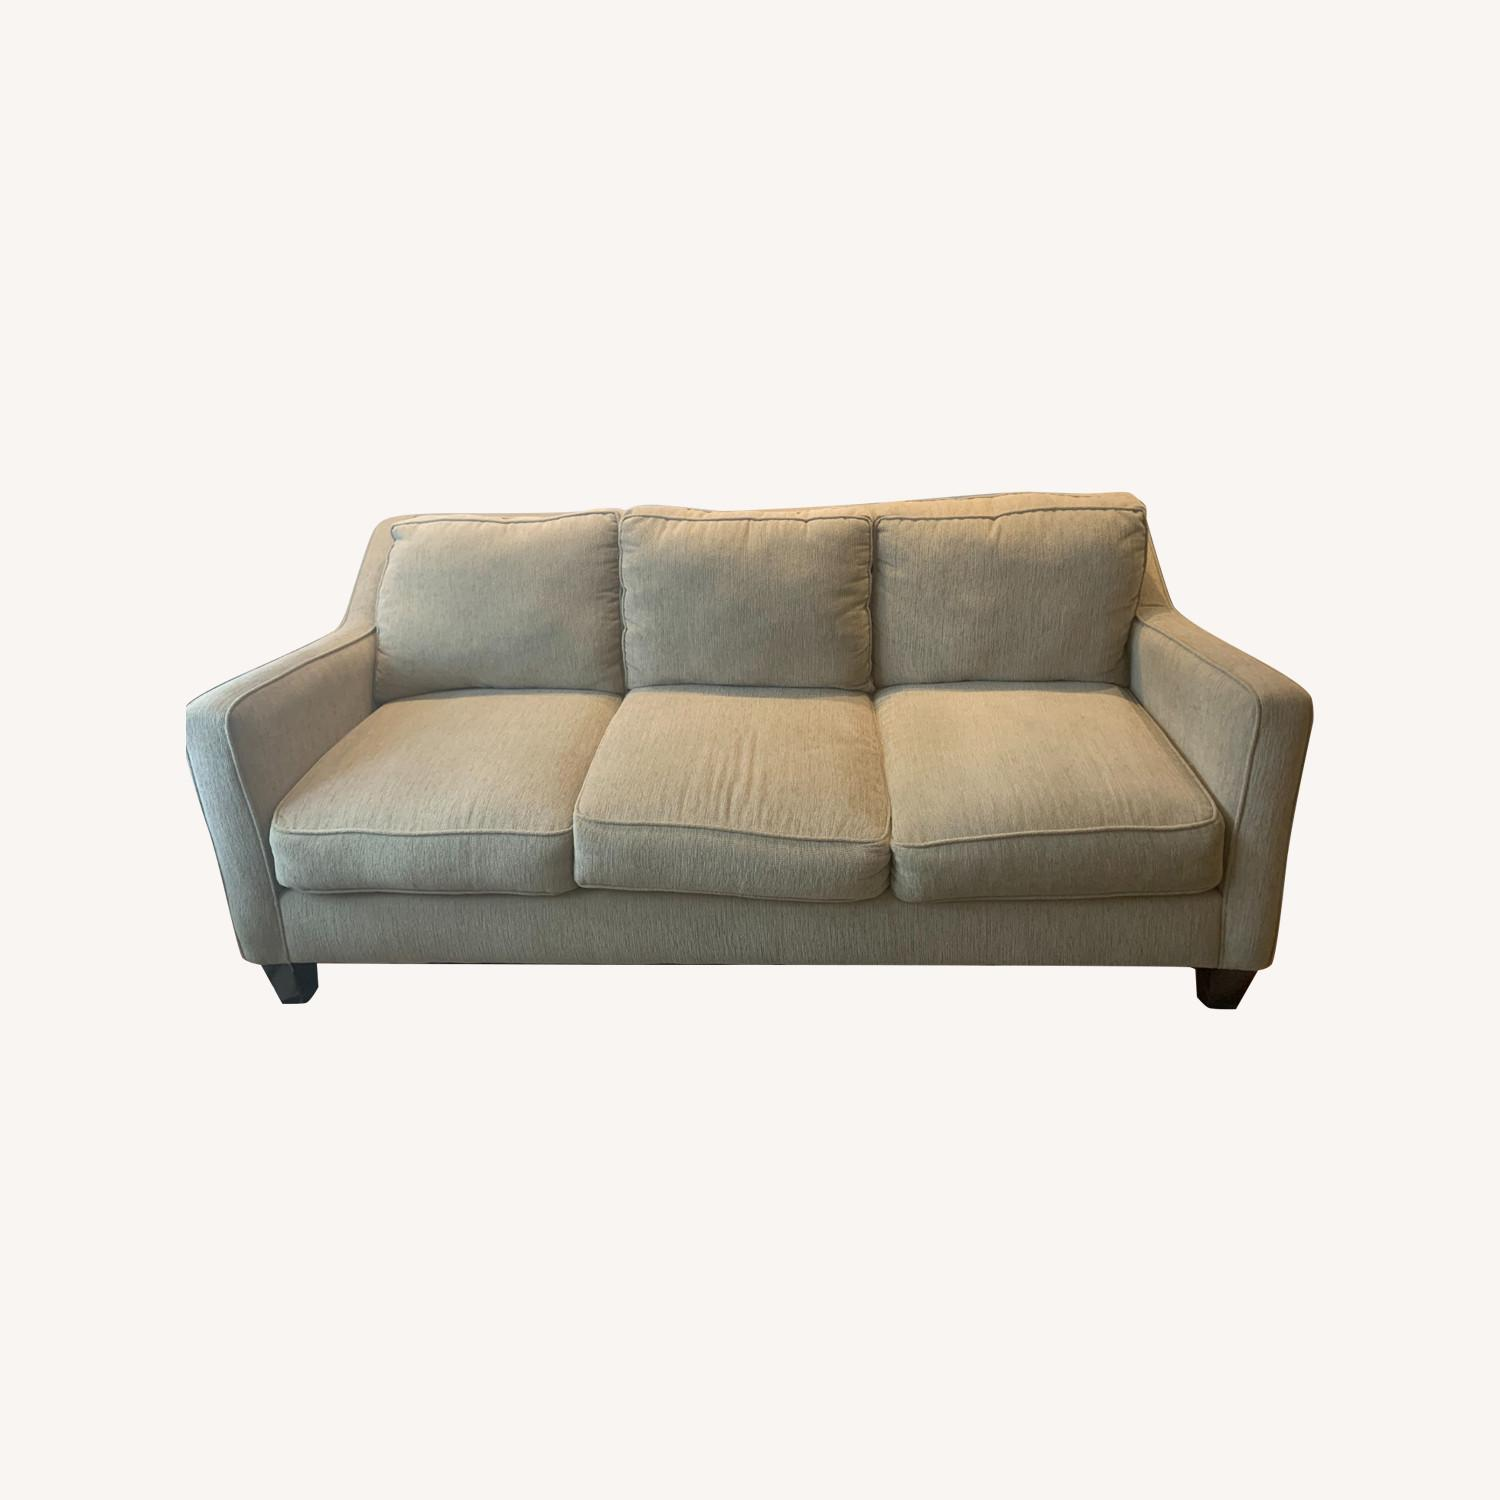 Bloomingdales Exclusive 3 Seater Fabric Sofa - image-0